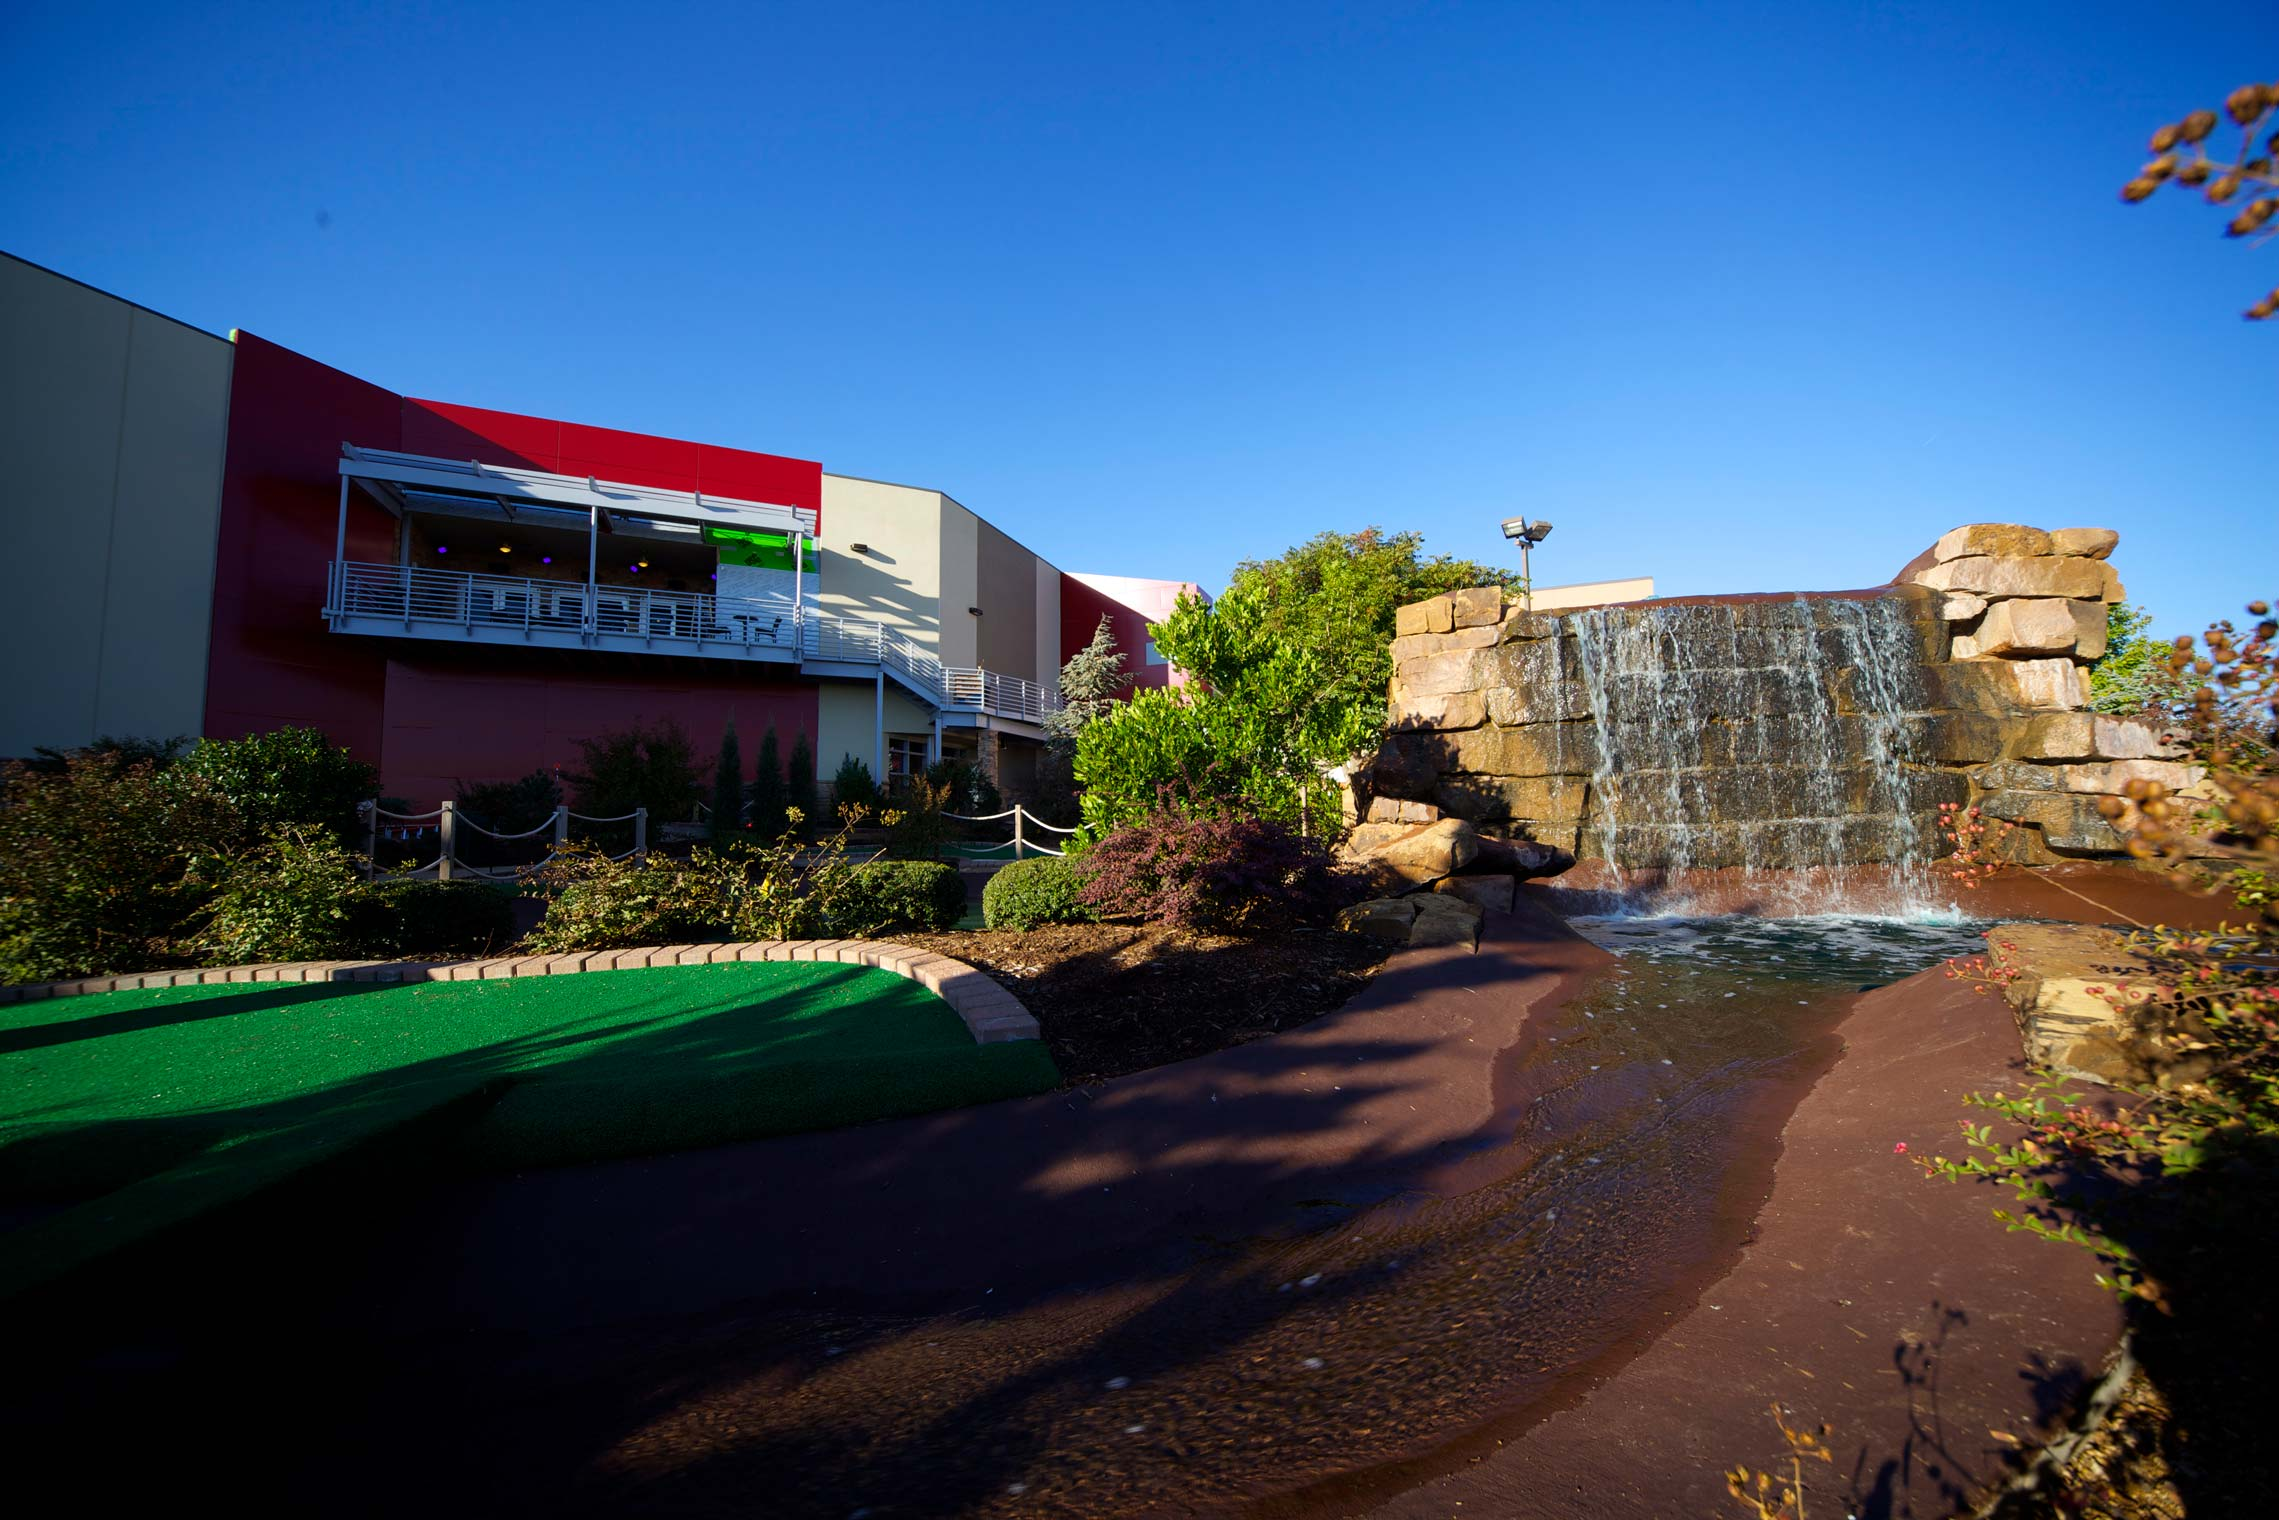 Copy of Waterfall on Mini Golf Course